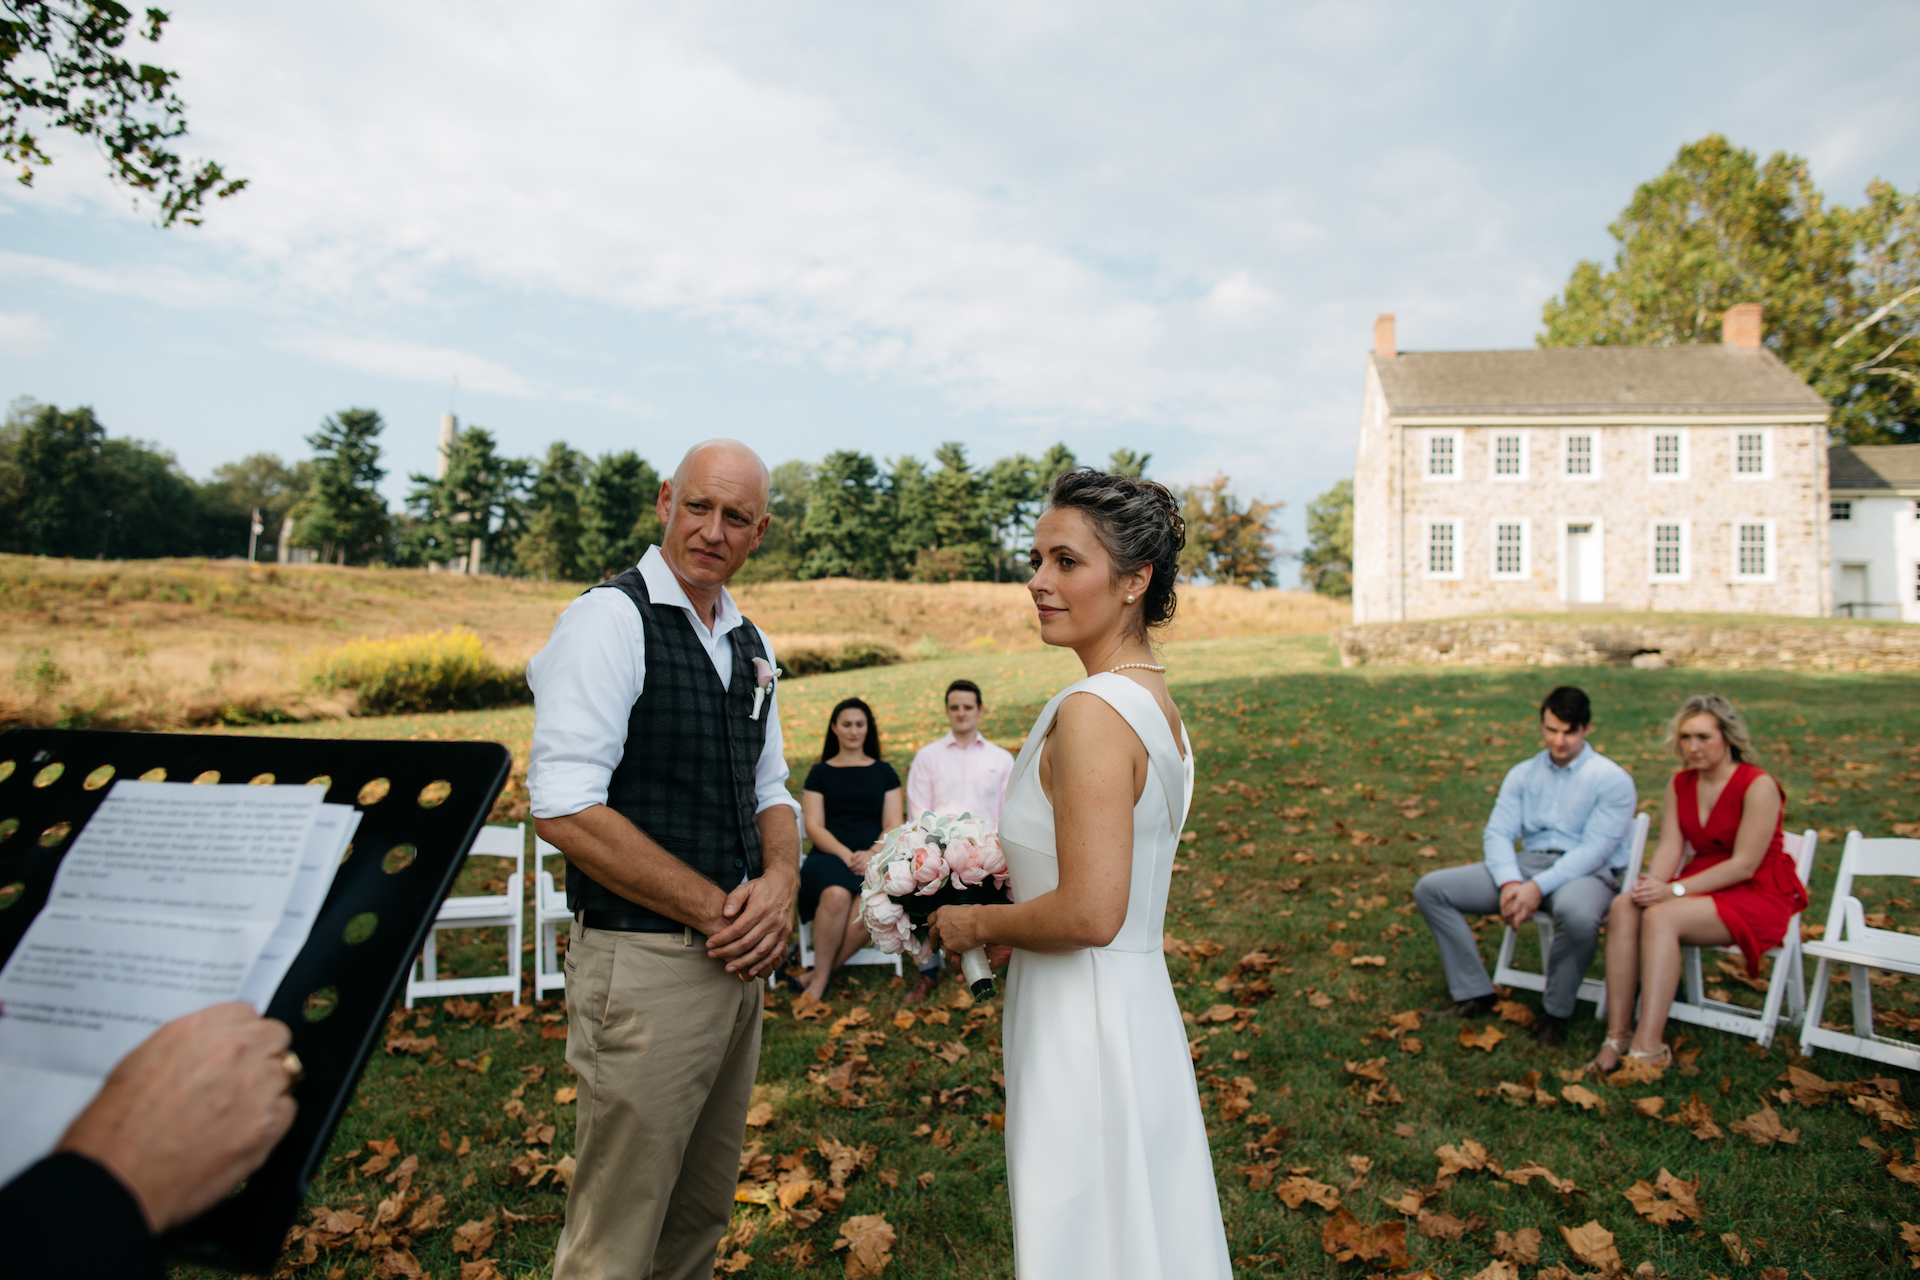 Valley Forge in Pennsylvania Elopement Photography | La location è stata bellissima per la cerimonia all'aperto